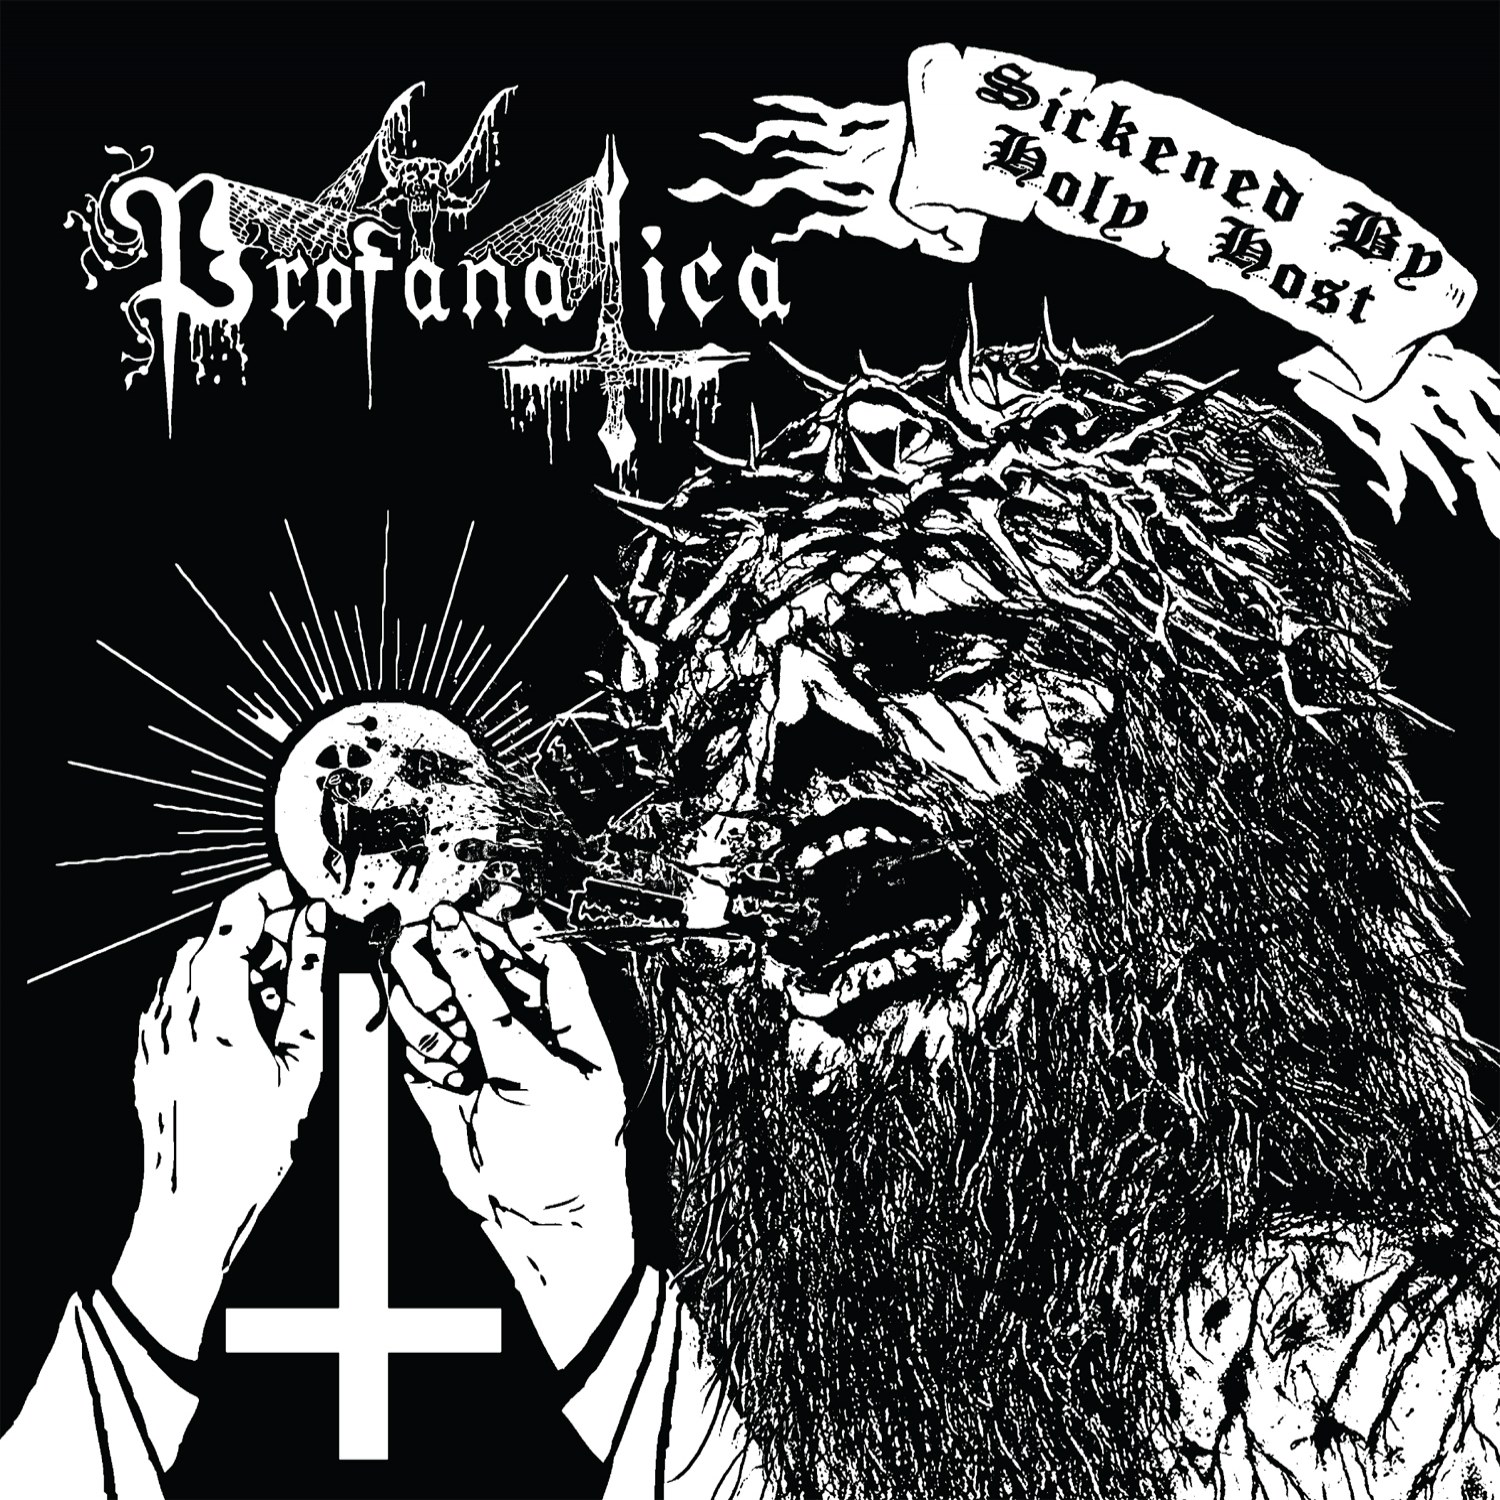 Review for Profanatica - Sickened by Holy Host